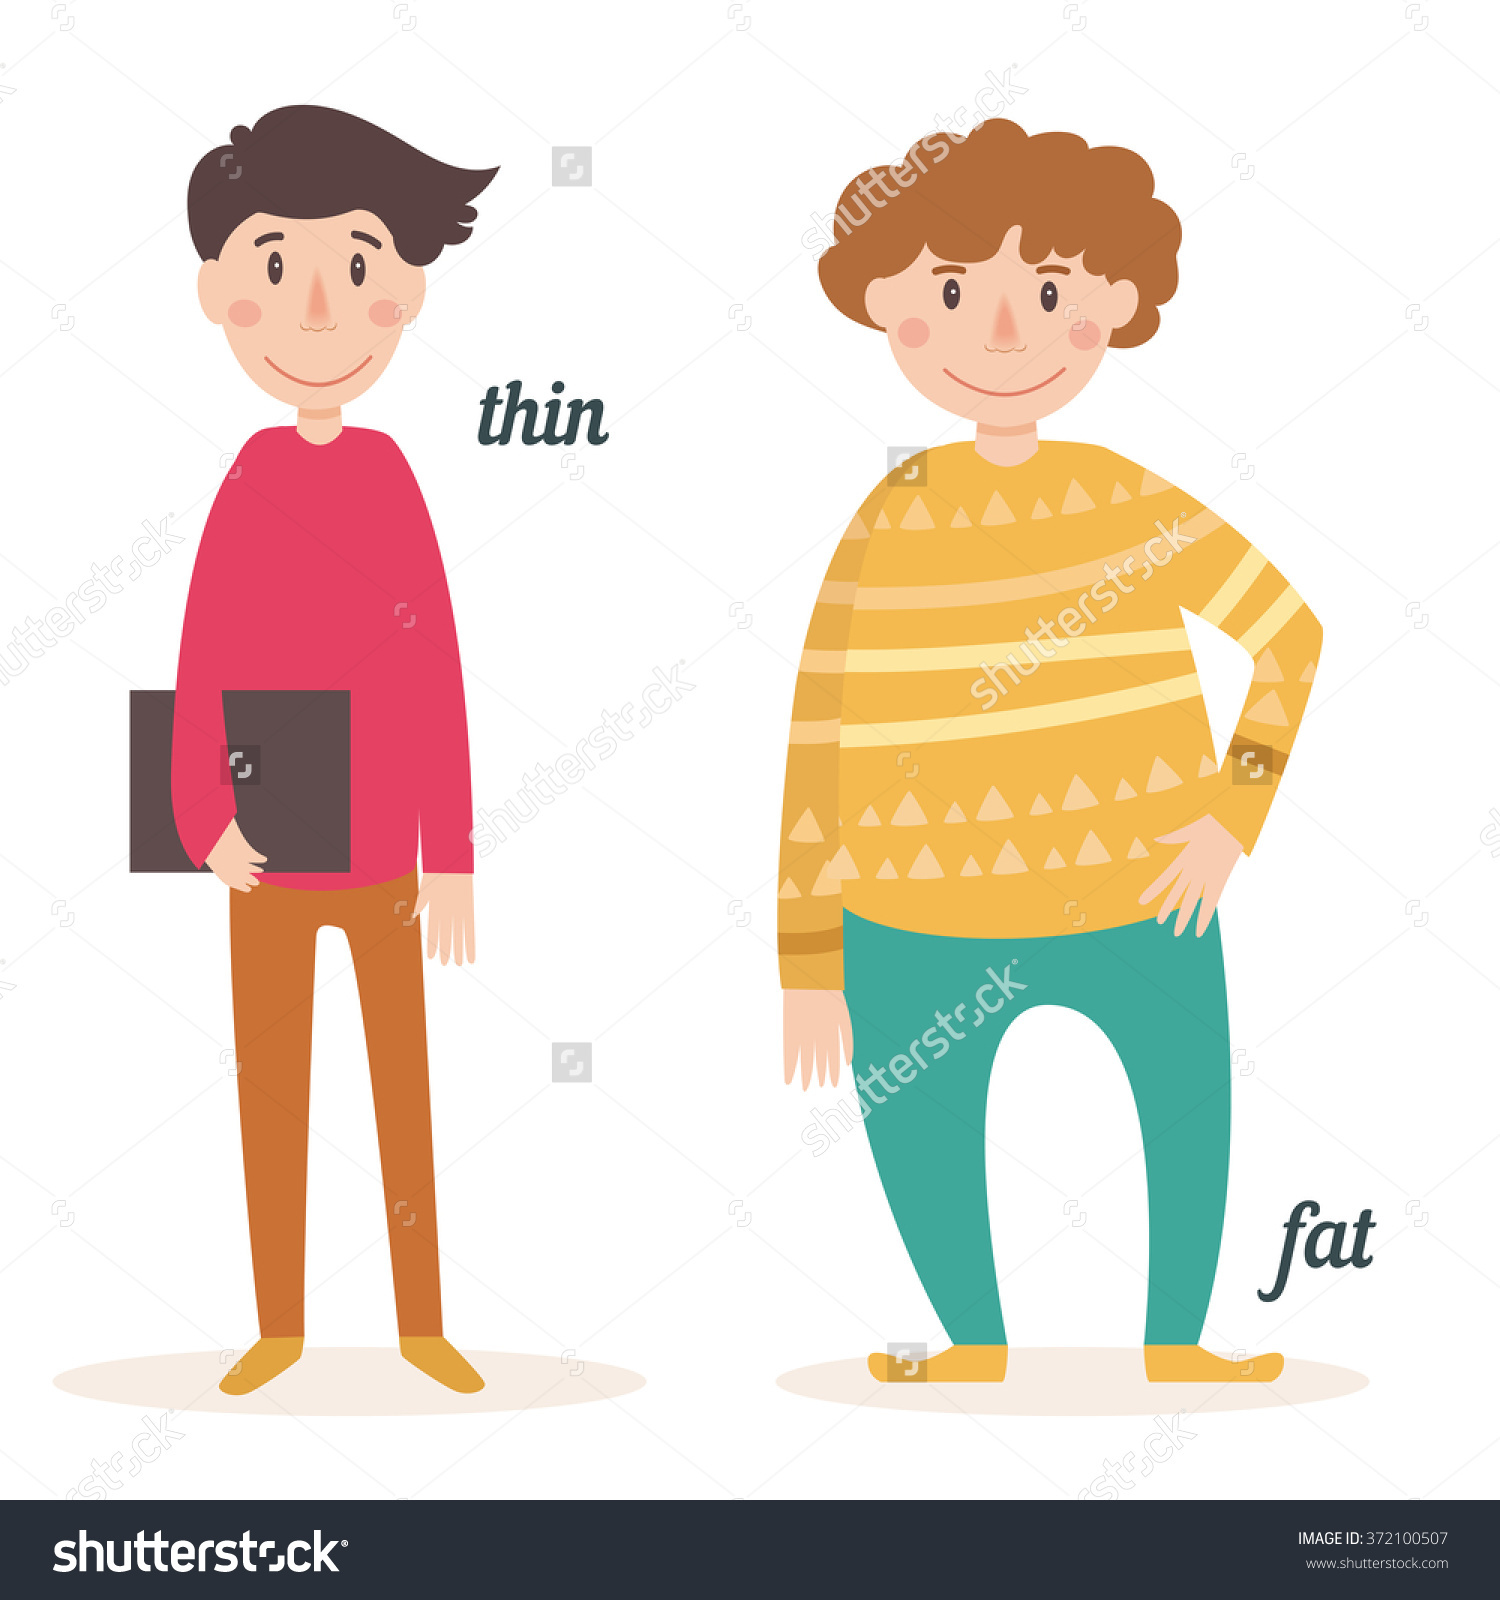 Fat and thin clipart png free download Fat to skinny people clipart - ClipartFest png free download